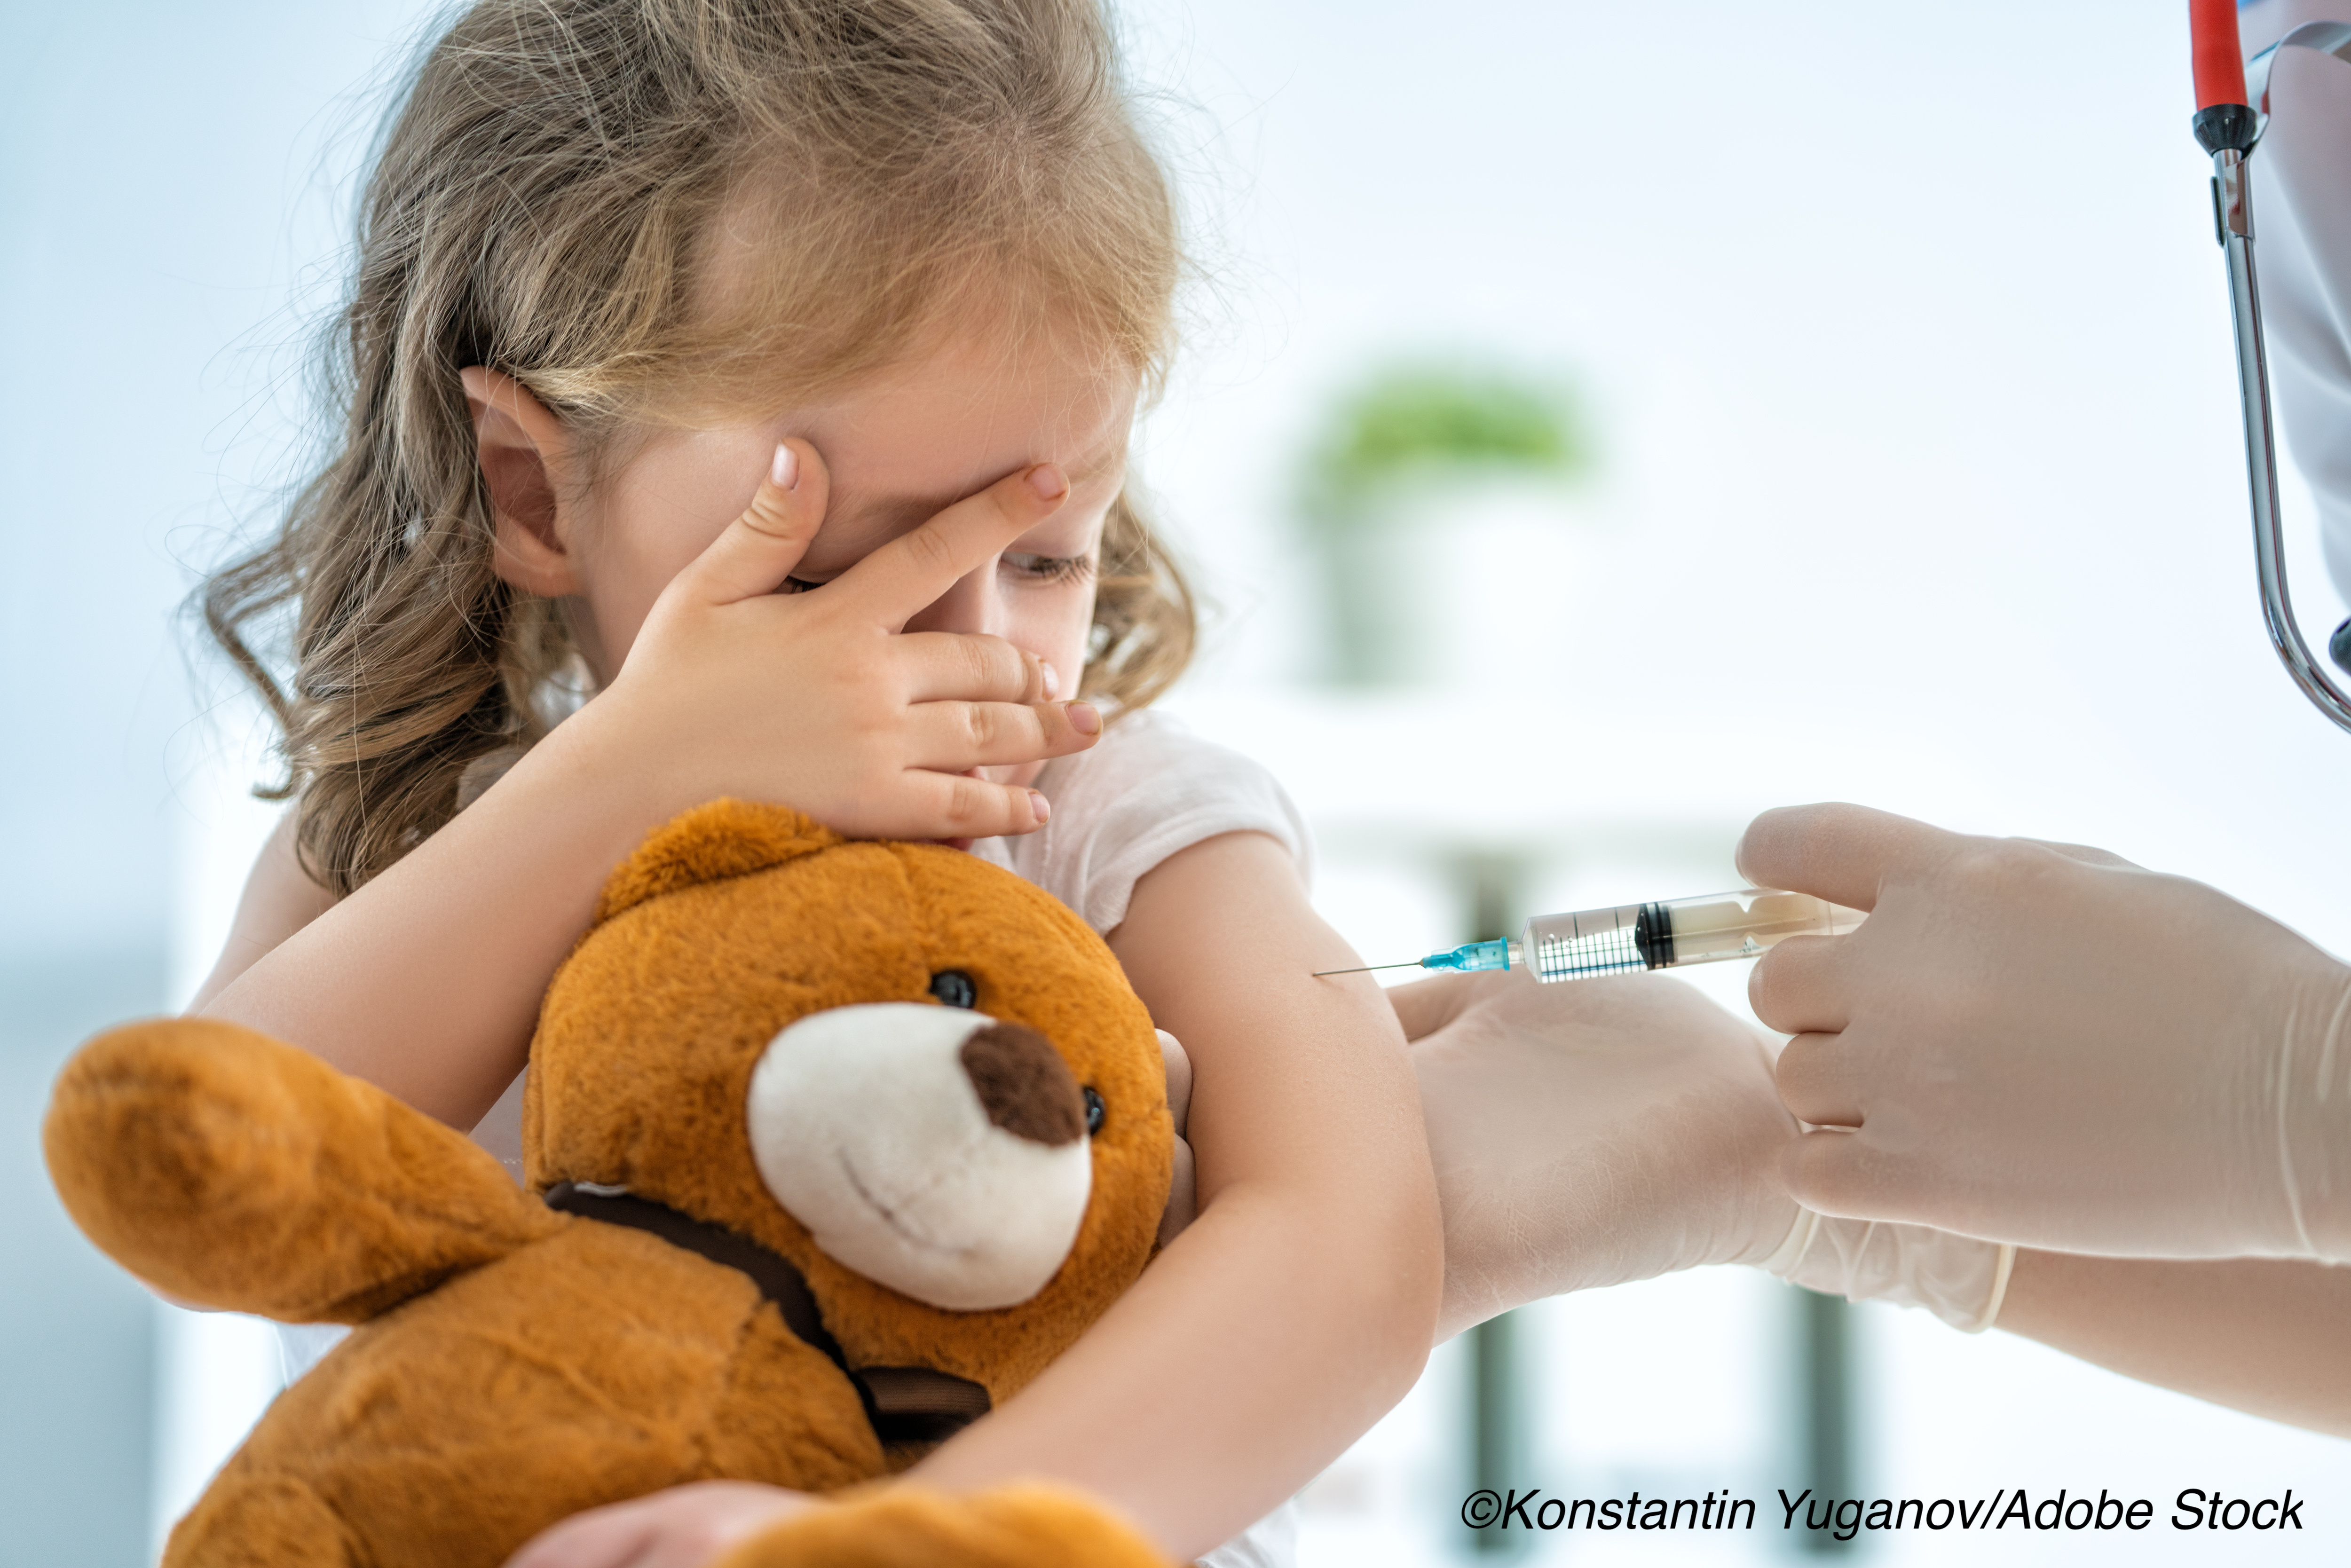 Parents Hesitate on Flu Vax for Kids